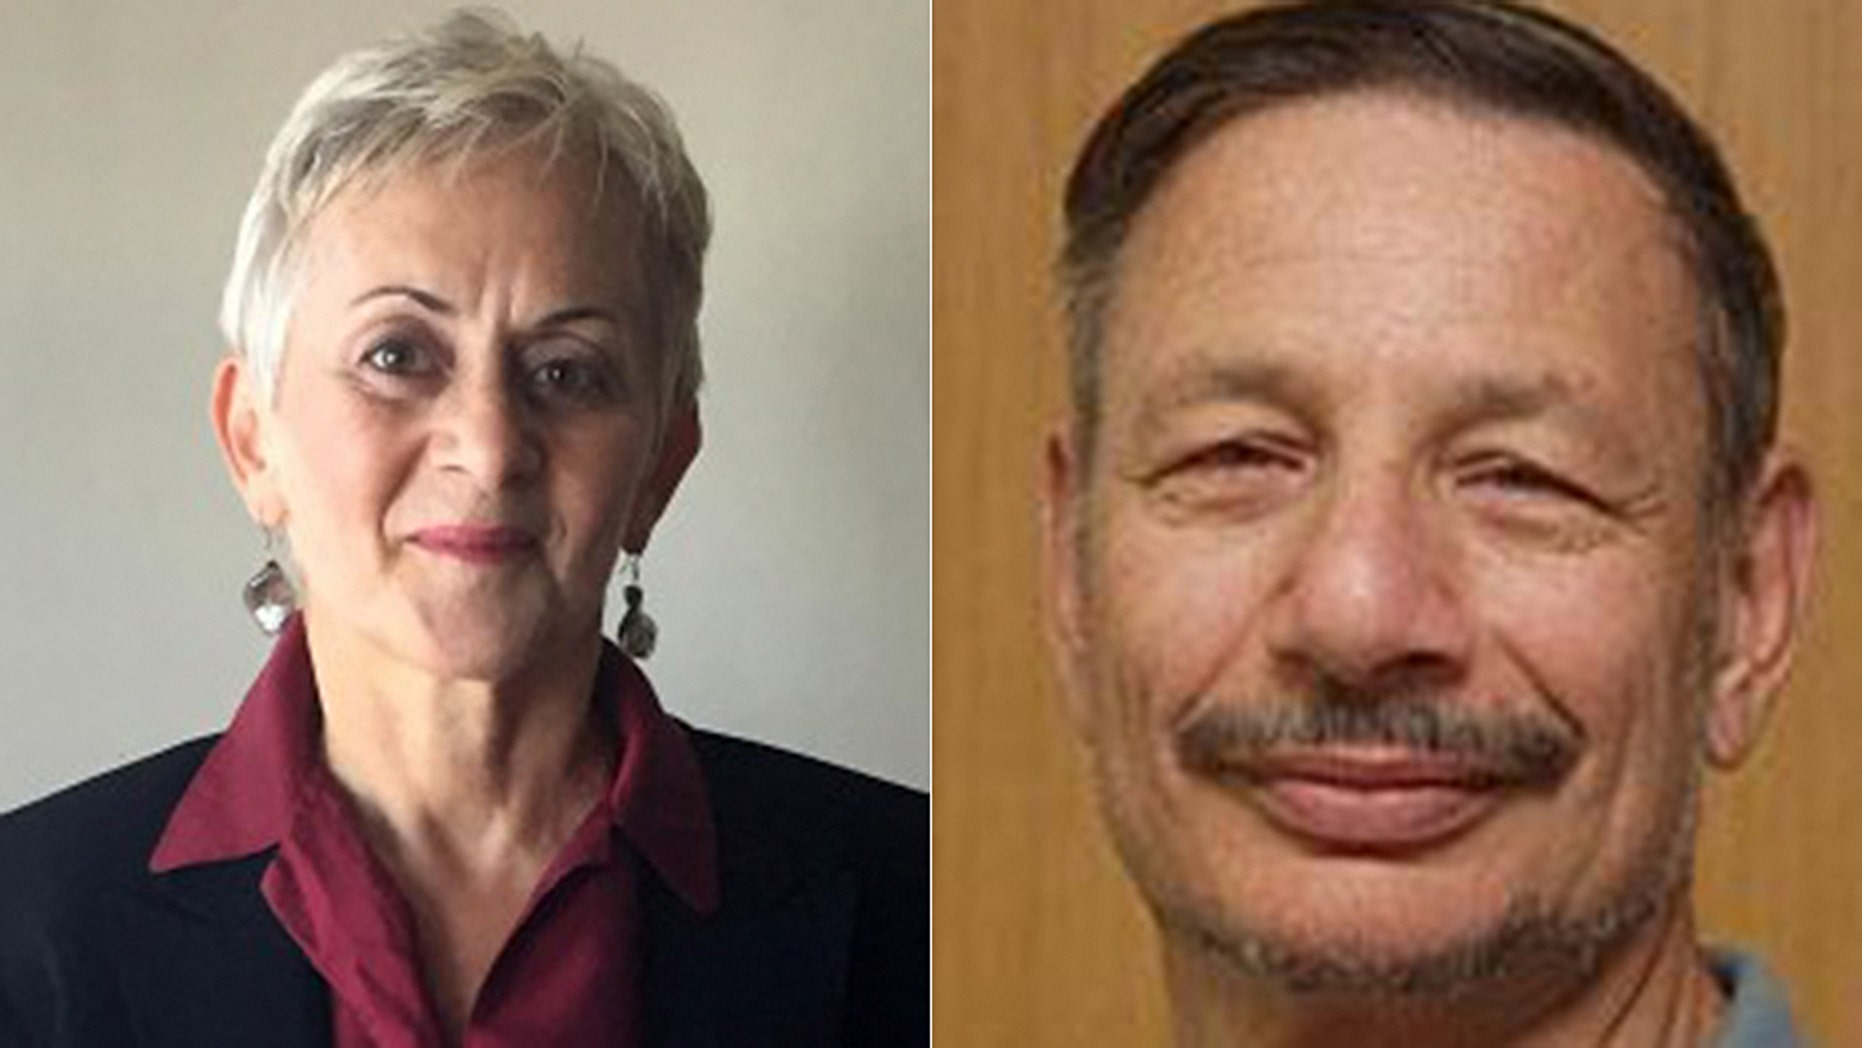 Simona Sharoni, left, filed a complaint against Richard Ned Lebow, right, for a joke he made in a crowded elevator at an academic conference.